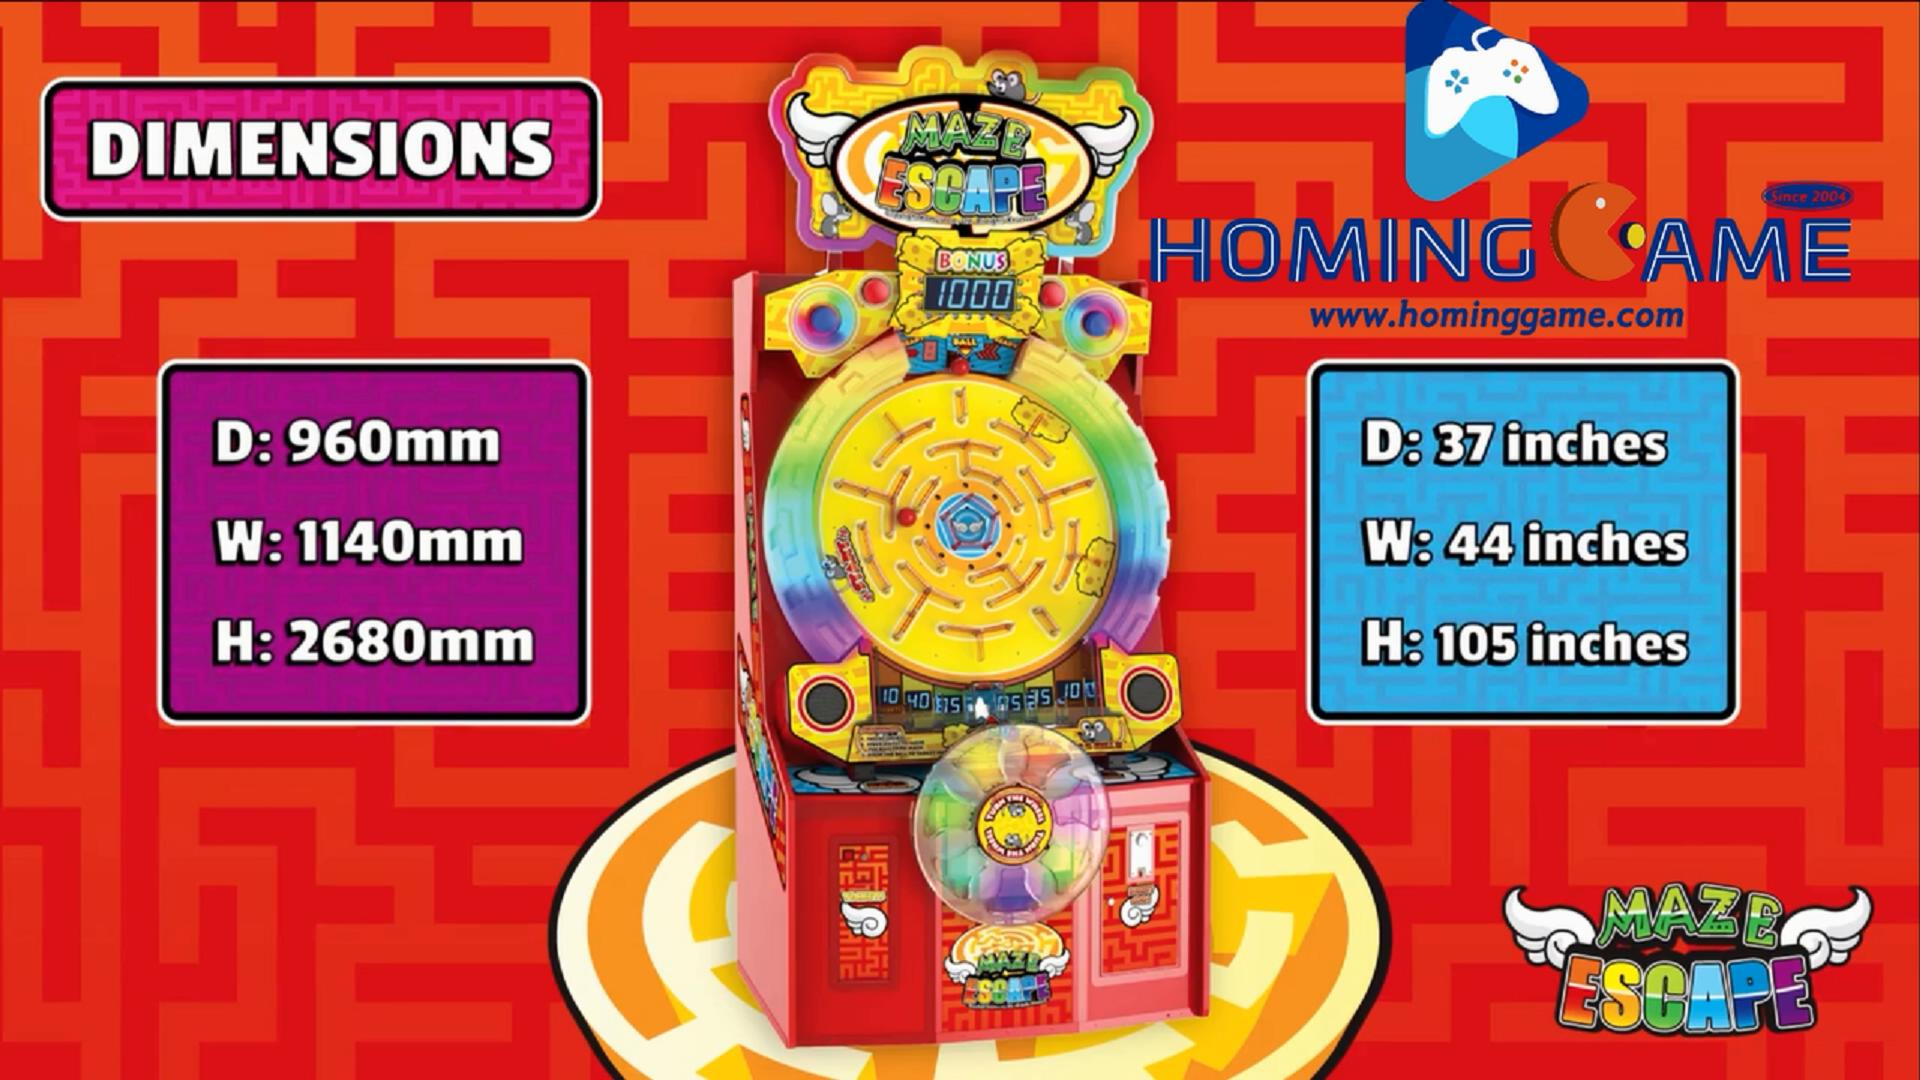 amaz escape,amaz escape redemption game machine,redemption game machine,redemption ticket game machine,lottery game machine,kids game equipment,game equipment,kids game machine,amusement park game equipment,kids game equipment,game machine,arcade game machine,coin operated game machine,indoor game machine,electrical game machine,hominggame ,www.hominggame.com,game equipment,gametube.hk,www.gametube.hk,